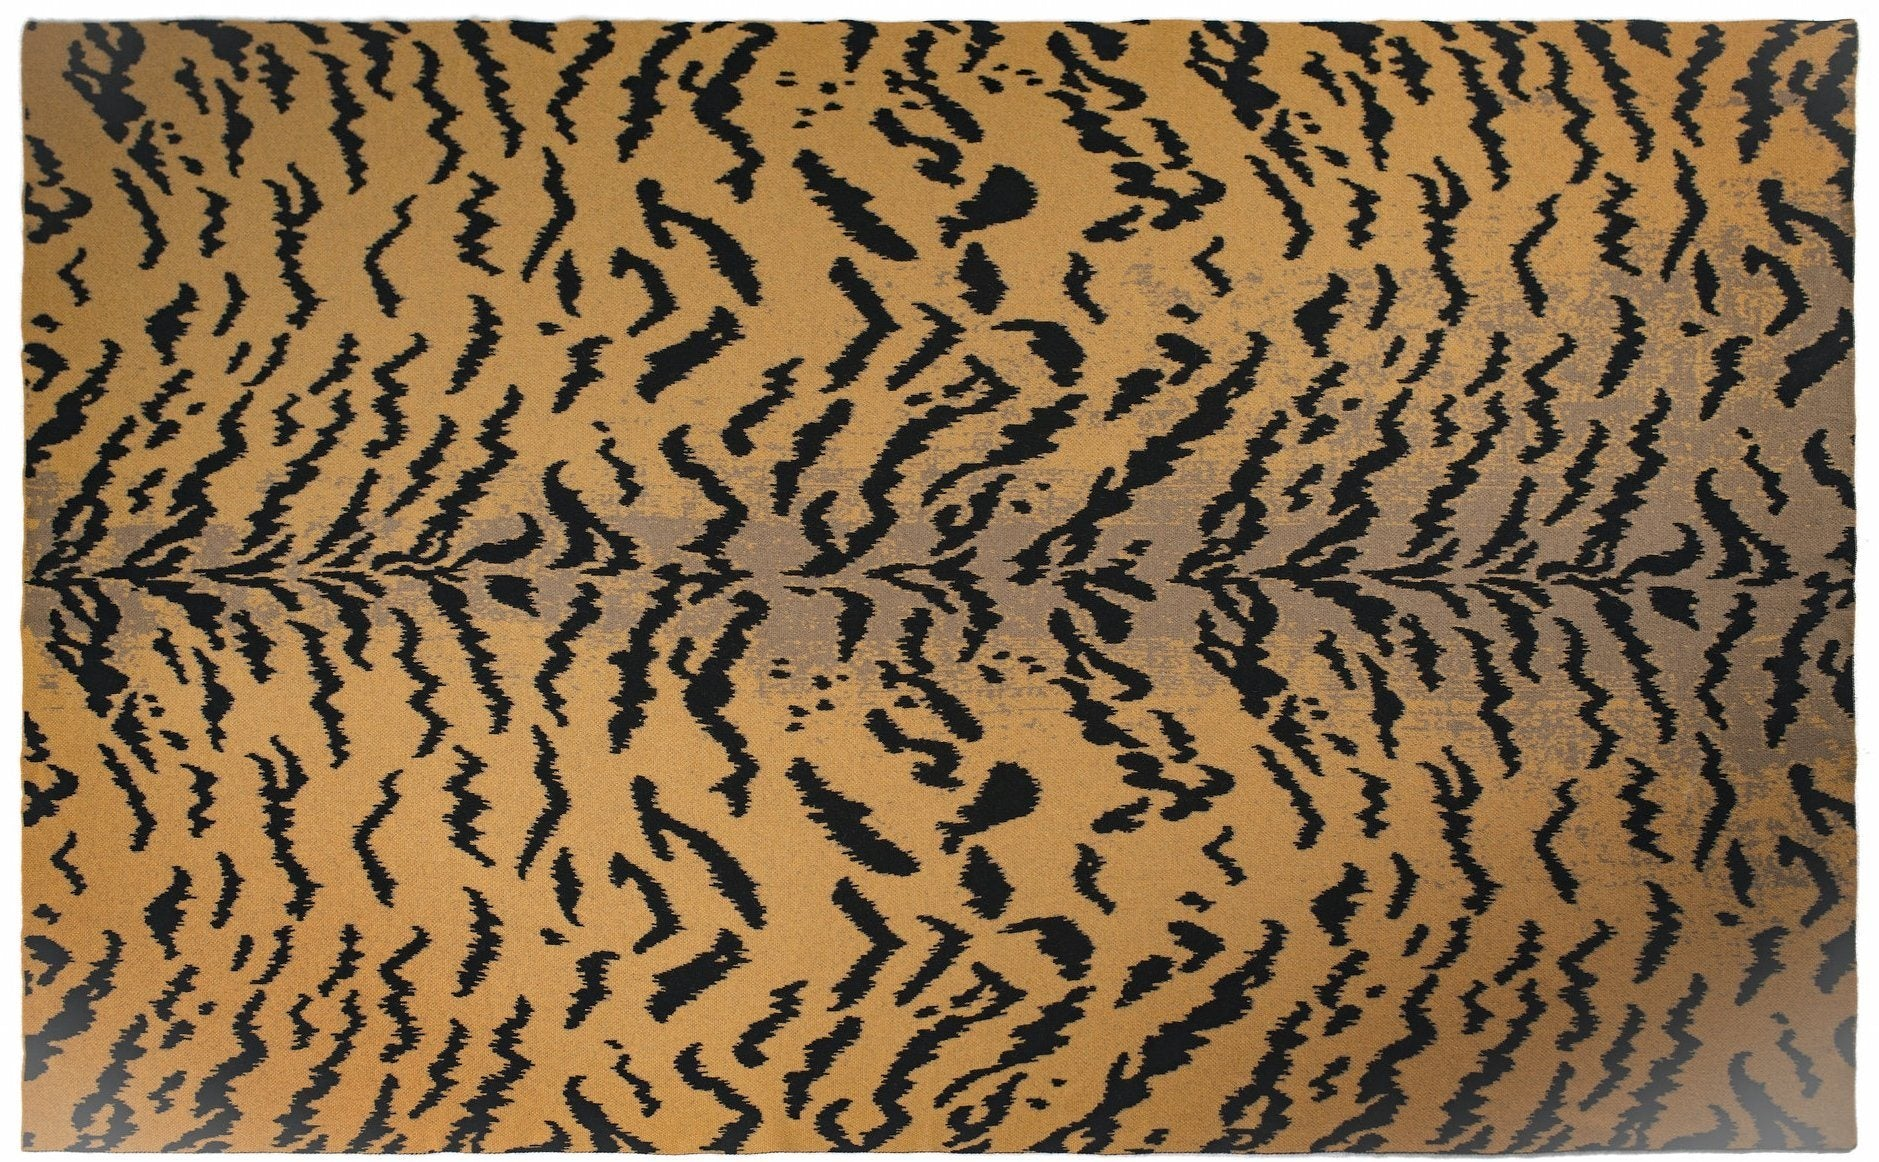 Calabria Tiger Throw - Saved New York at Fig Linens